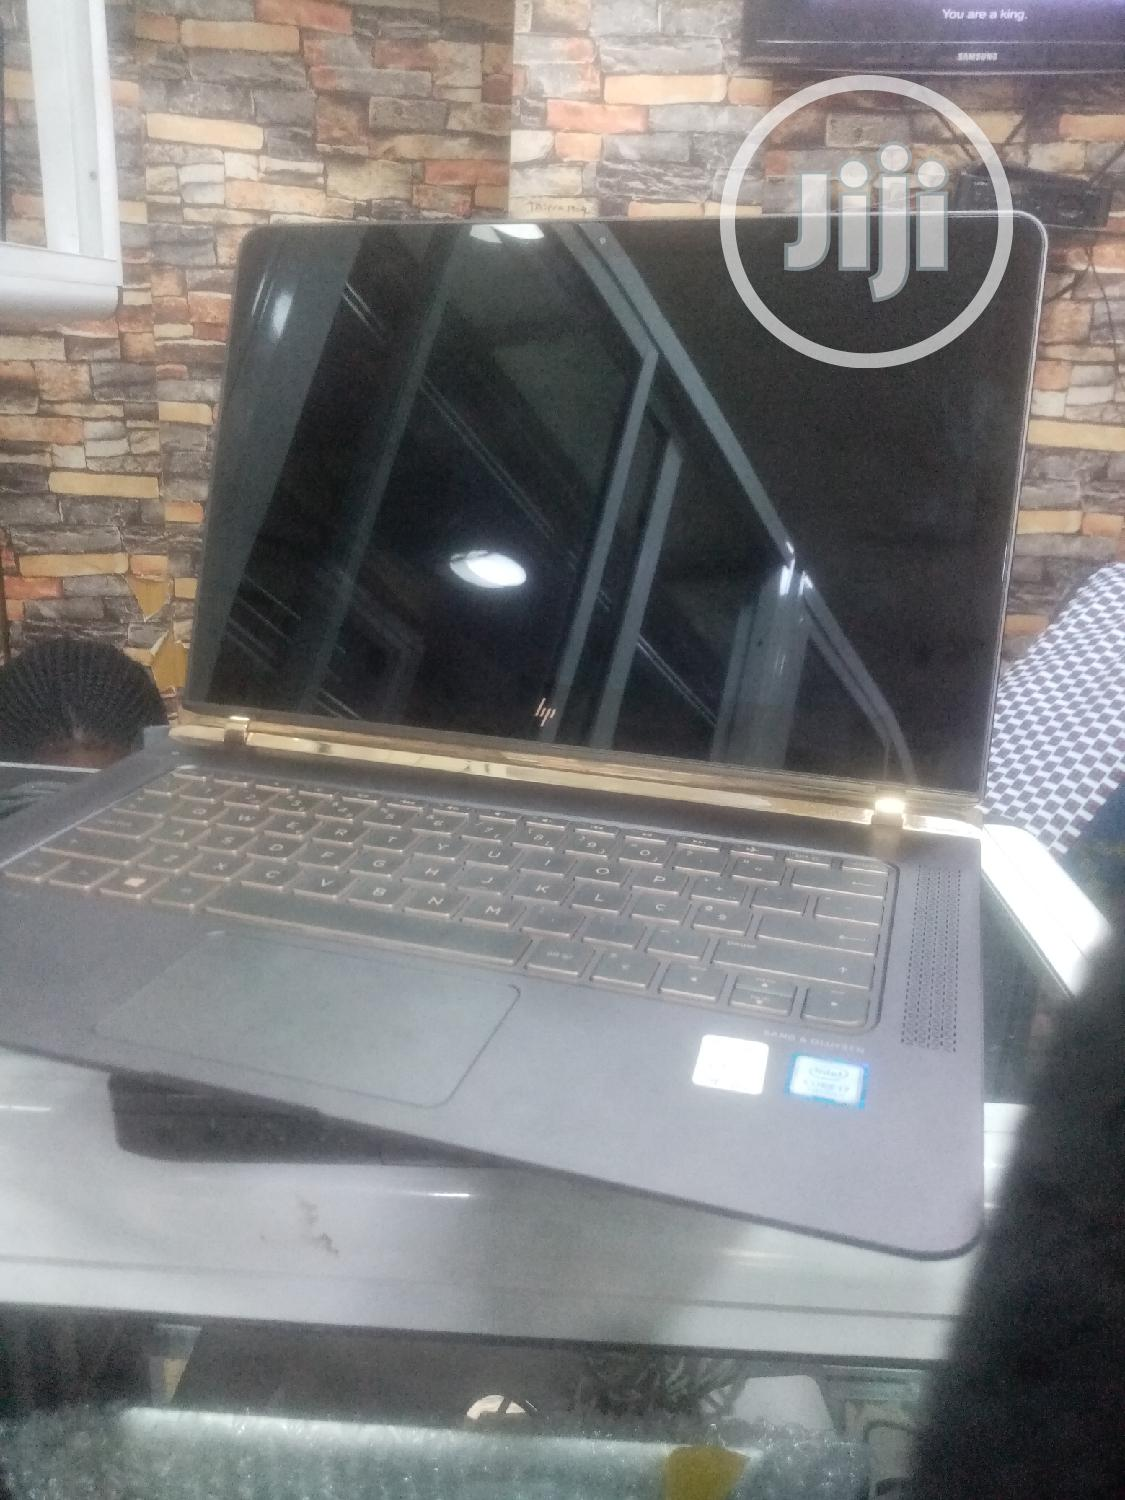 Laptop HP Spectra 13 8GB Intel Core i7 SSD 256GB   Laptops & Computers for sale in Ikeja, Lagos State, Nigeria